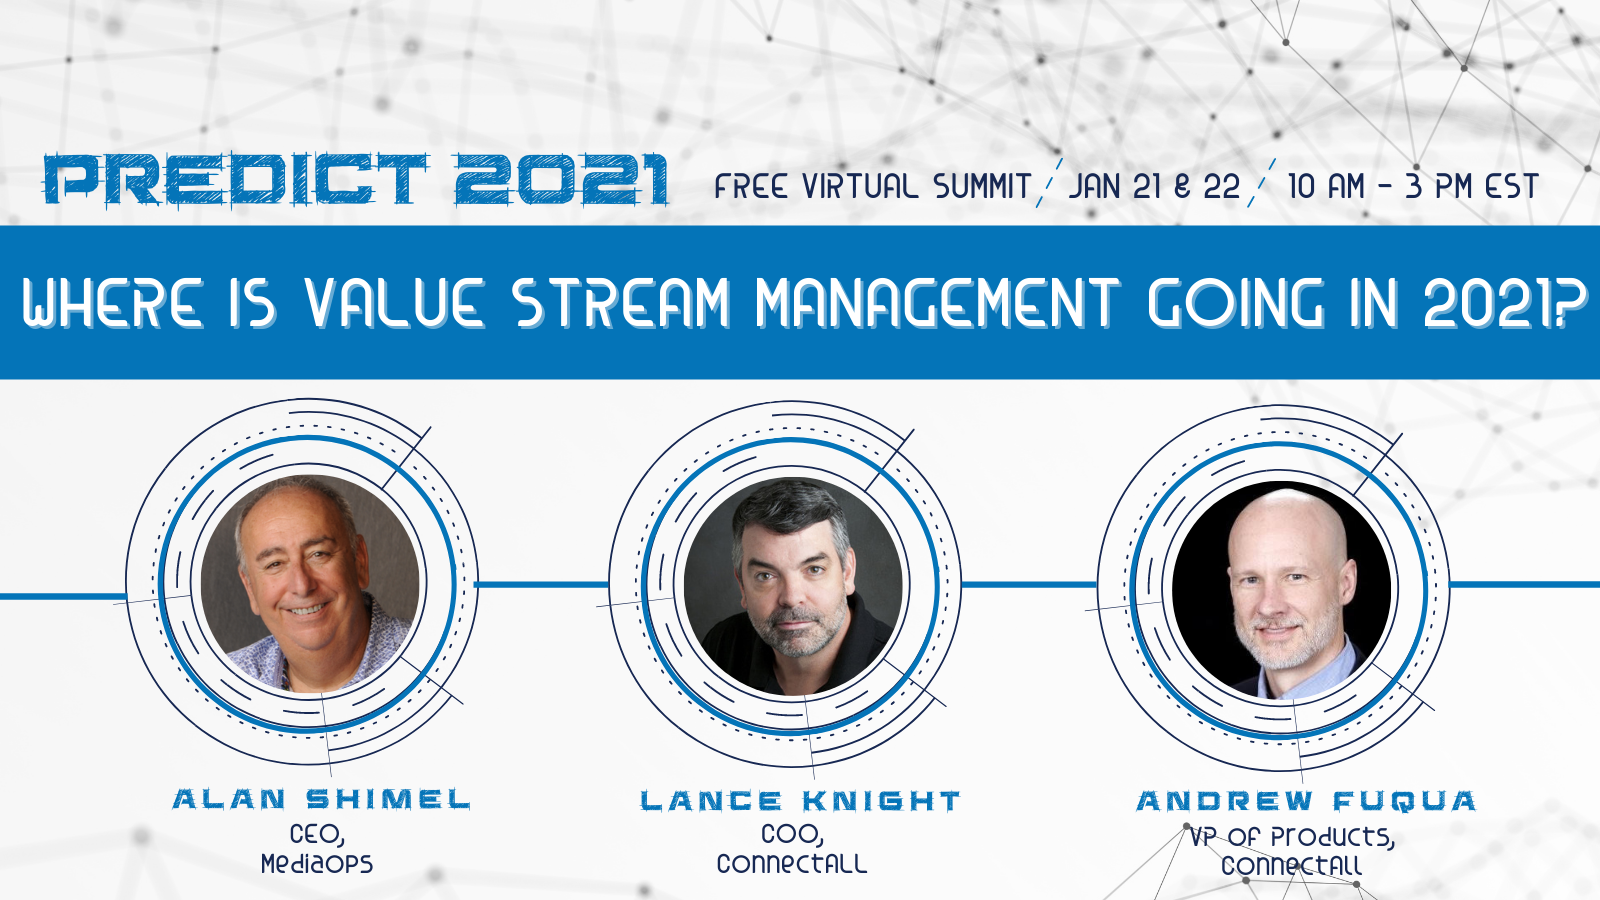 Value Stream Management panel at Predict 2021